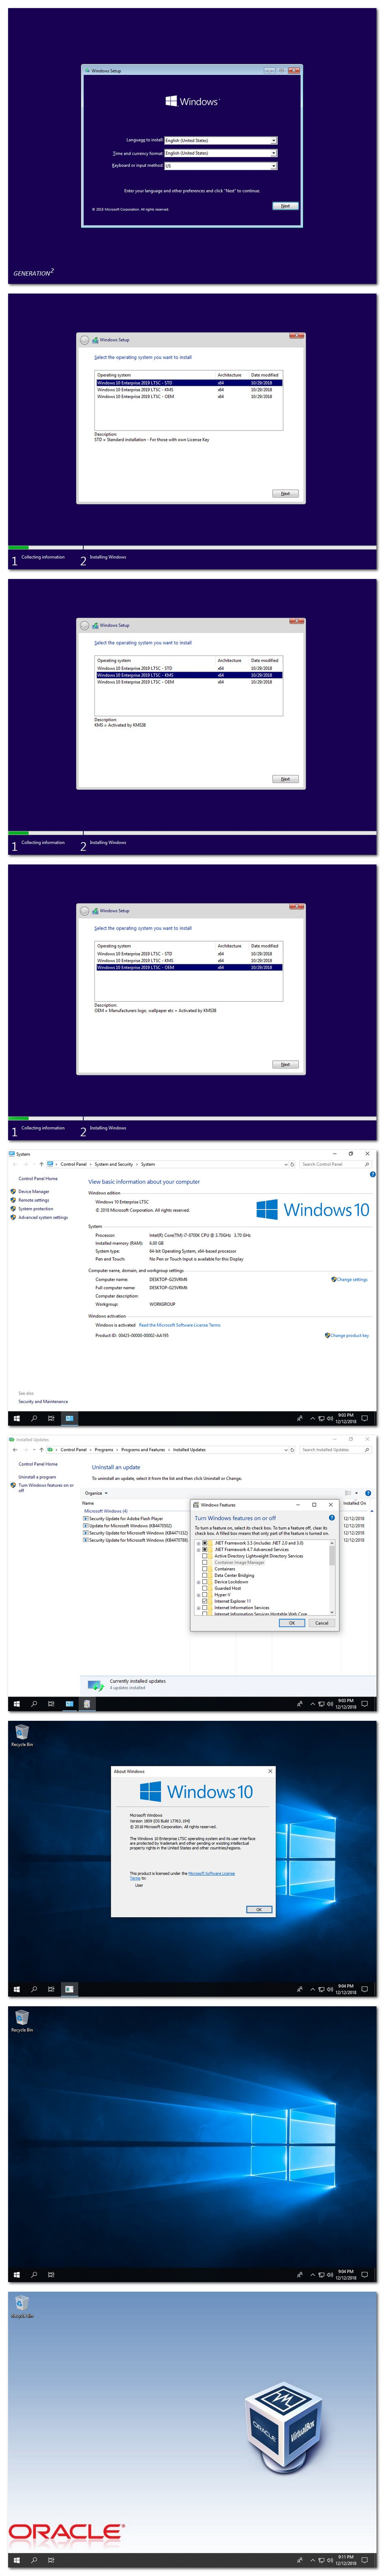 Torrent - Windows 10 Enterprise LTSC 2019 X64 MULTi-24 DEC 2018